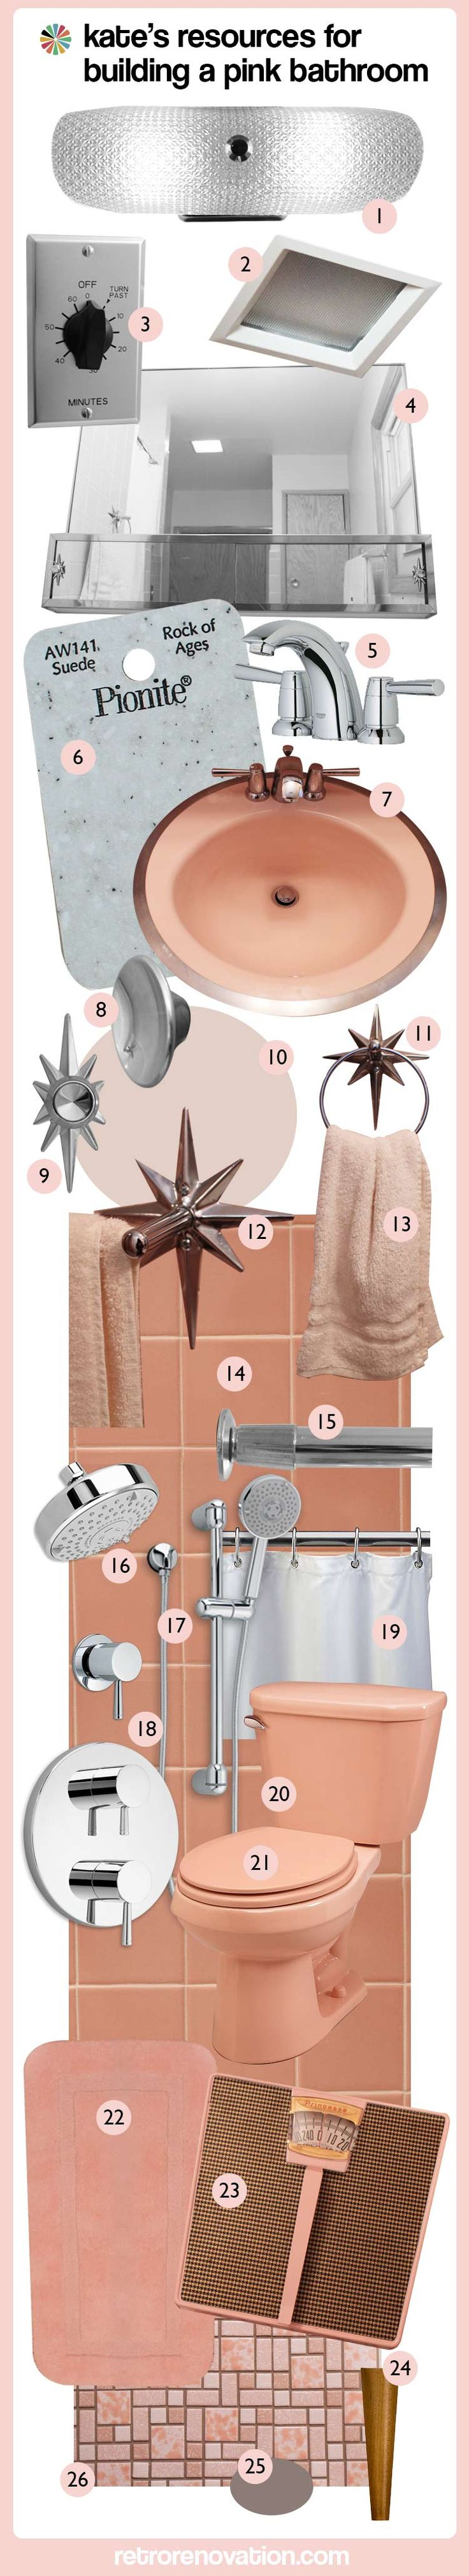 Retro pink bathroom ideas - Kate S Resources For Building A Pink Bathroom 26 Key Items On Her Remodel List